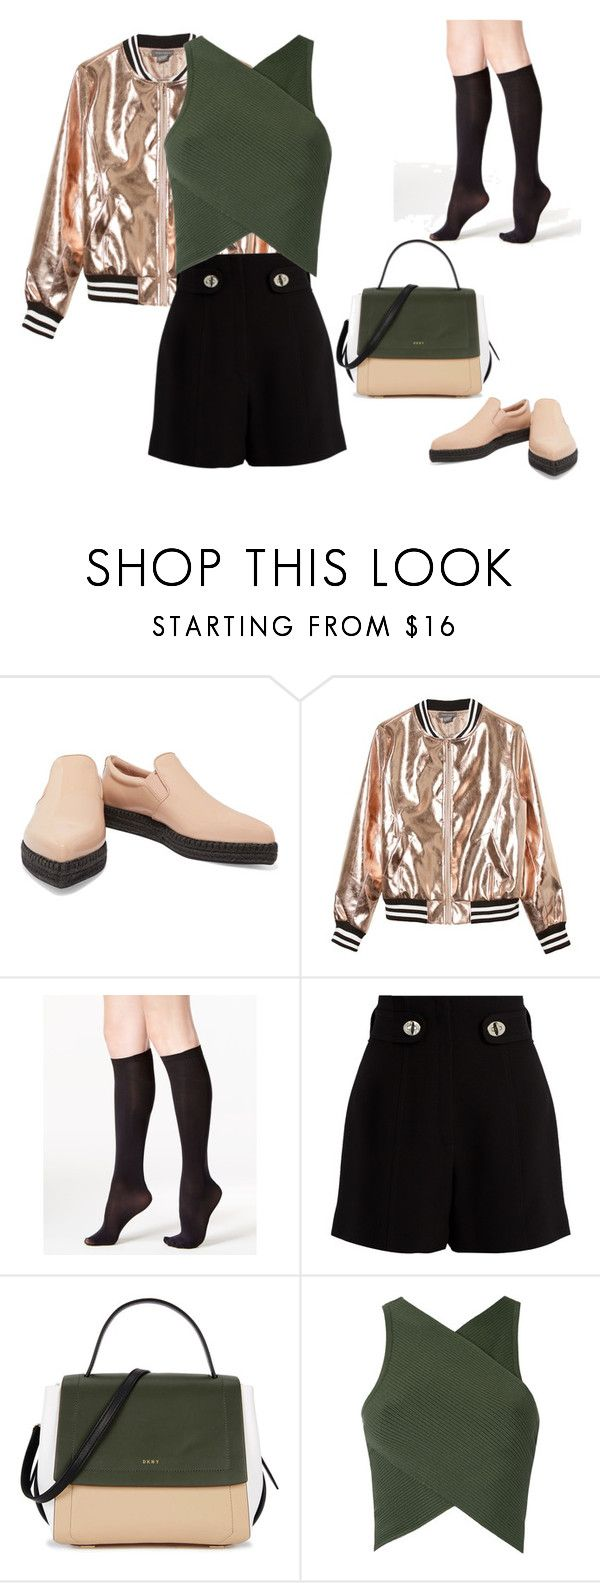 Гольфы в тренде by repriza on Polyvore featuring мода, EGREY, Sans Souci, Proenza Schouler and DKNY